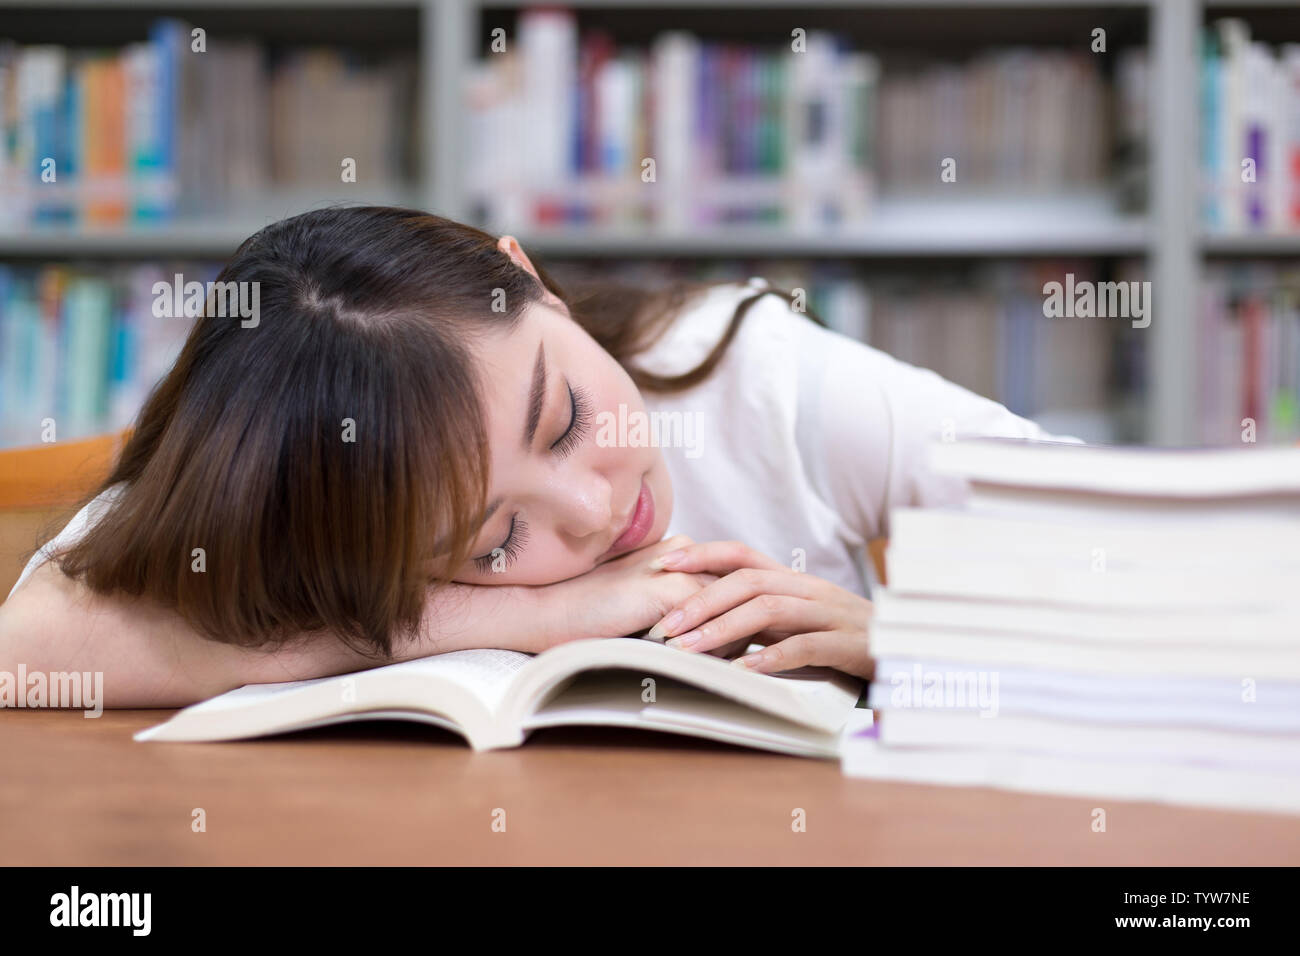 Beautiful asian femle student take nap in library during studying stack of books. - Stock Image